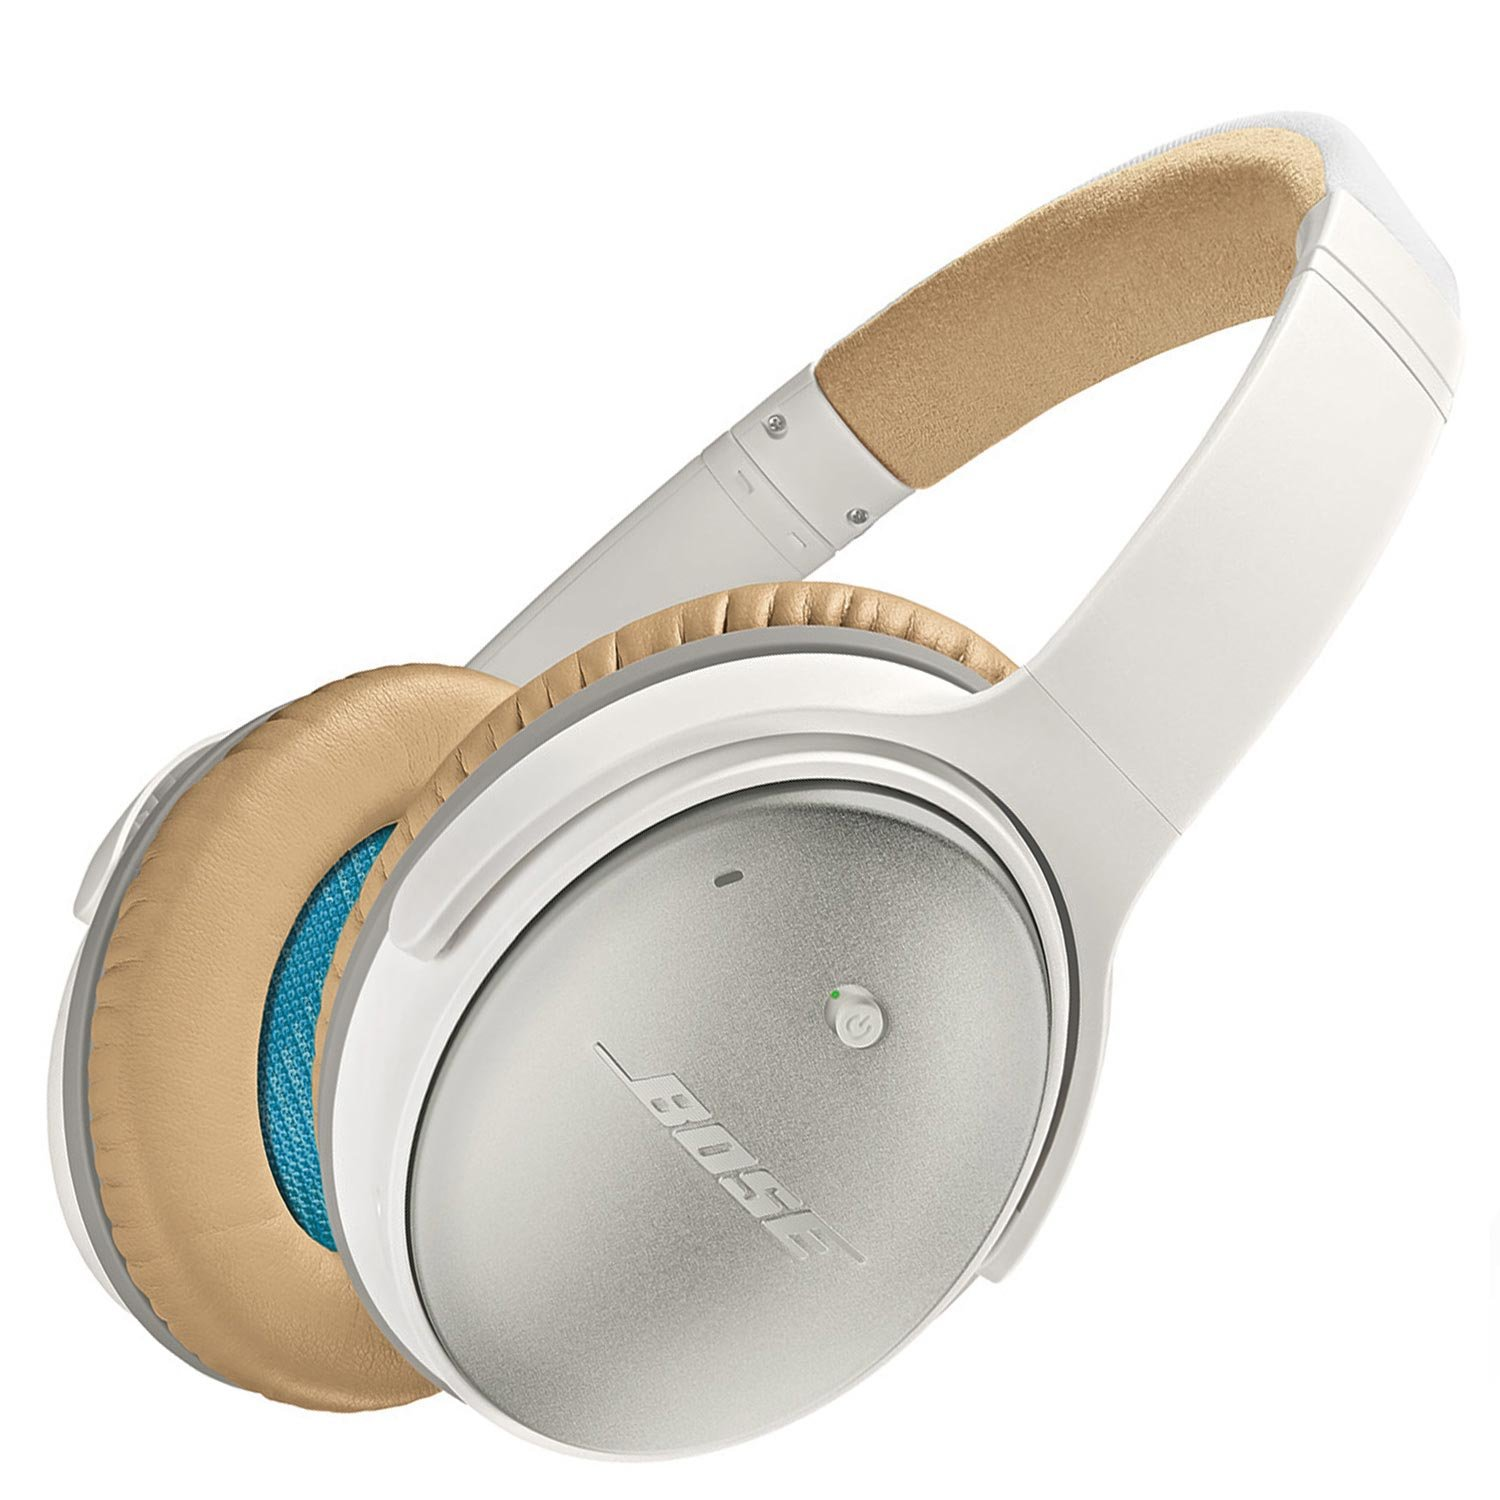 Bose QuietComfort 25 Acoustic Noise Cancelling Headphones - Apple devices, White